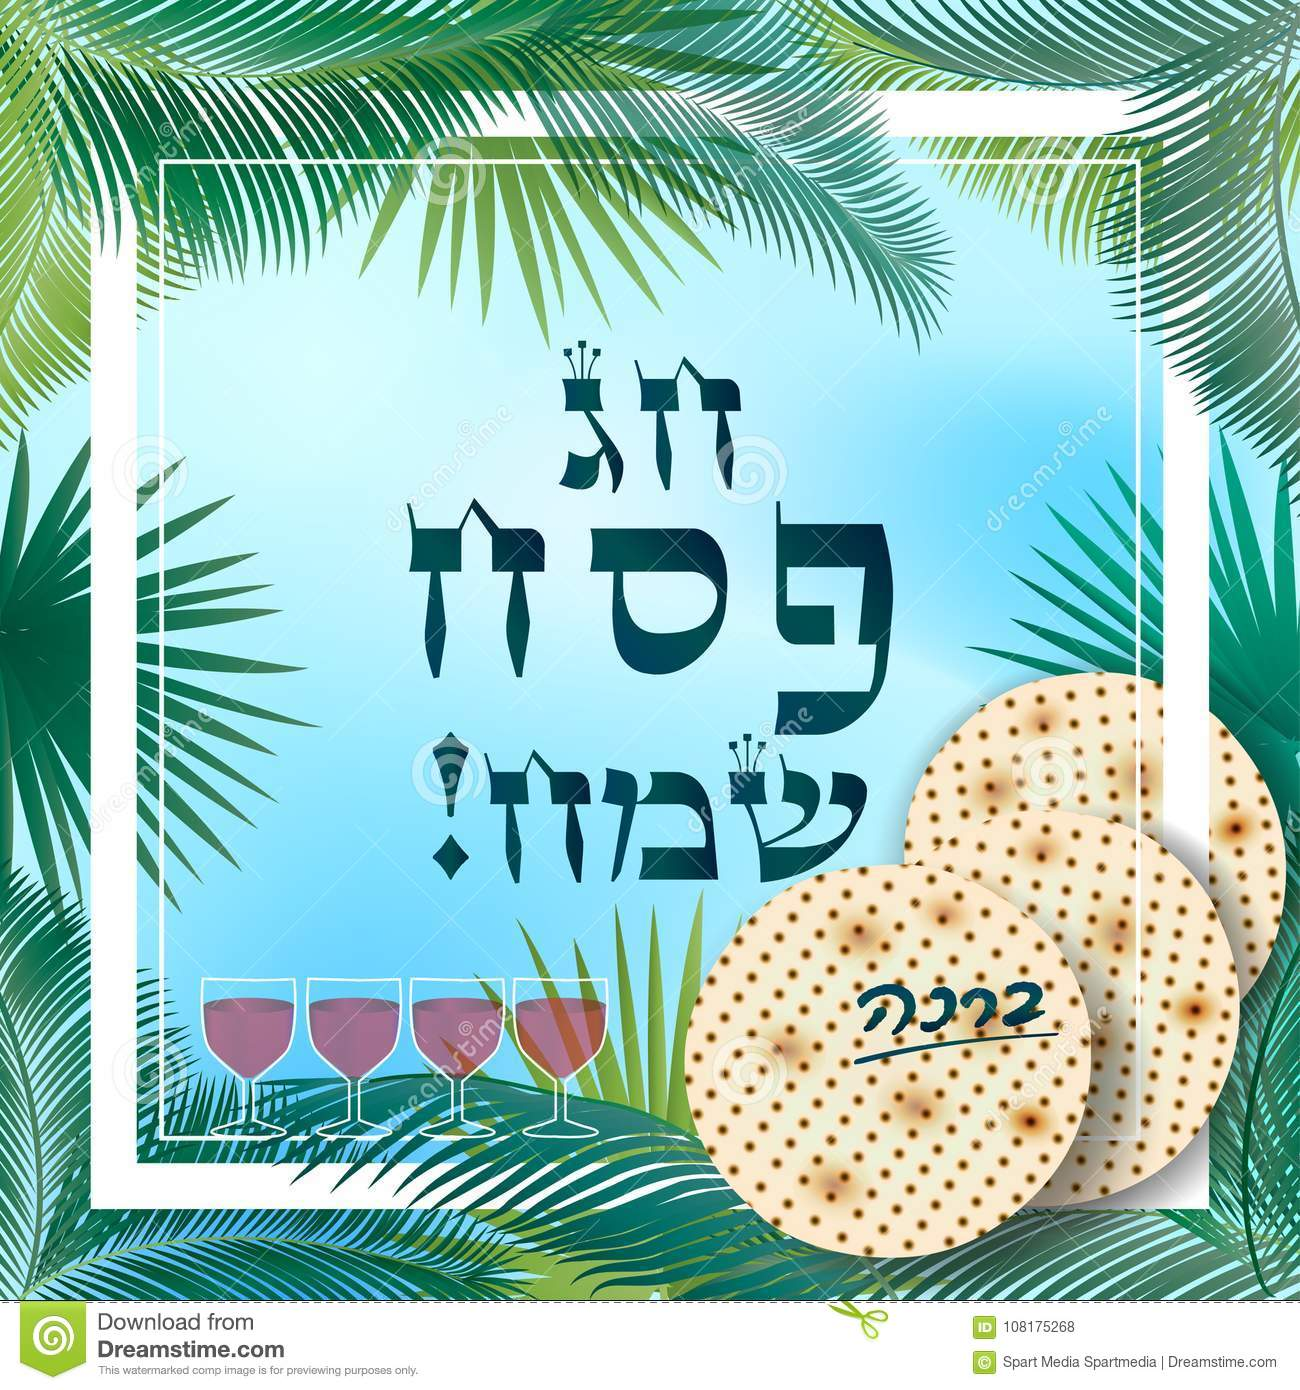 Happy passover greeting poster stock vector illustration of floral happy passover jewish holiday hebrew lettering greeting card with decorative ornamental palm tree leaves frame four wine glass matzot or matza is an m4hsunfo